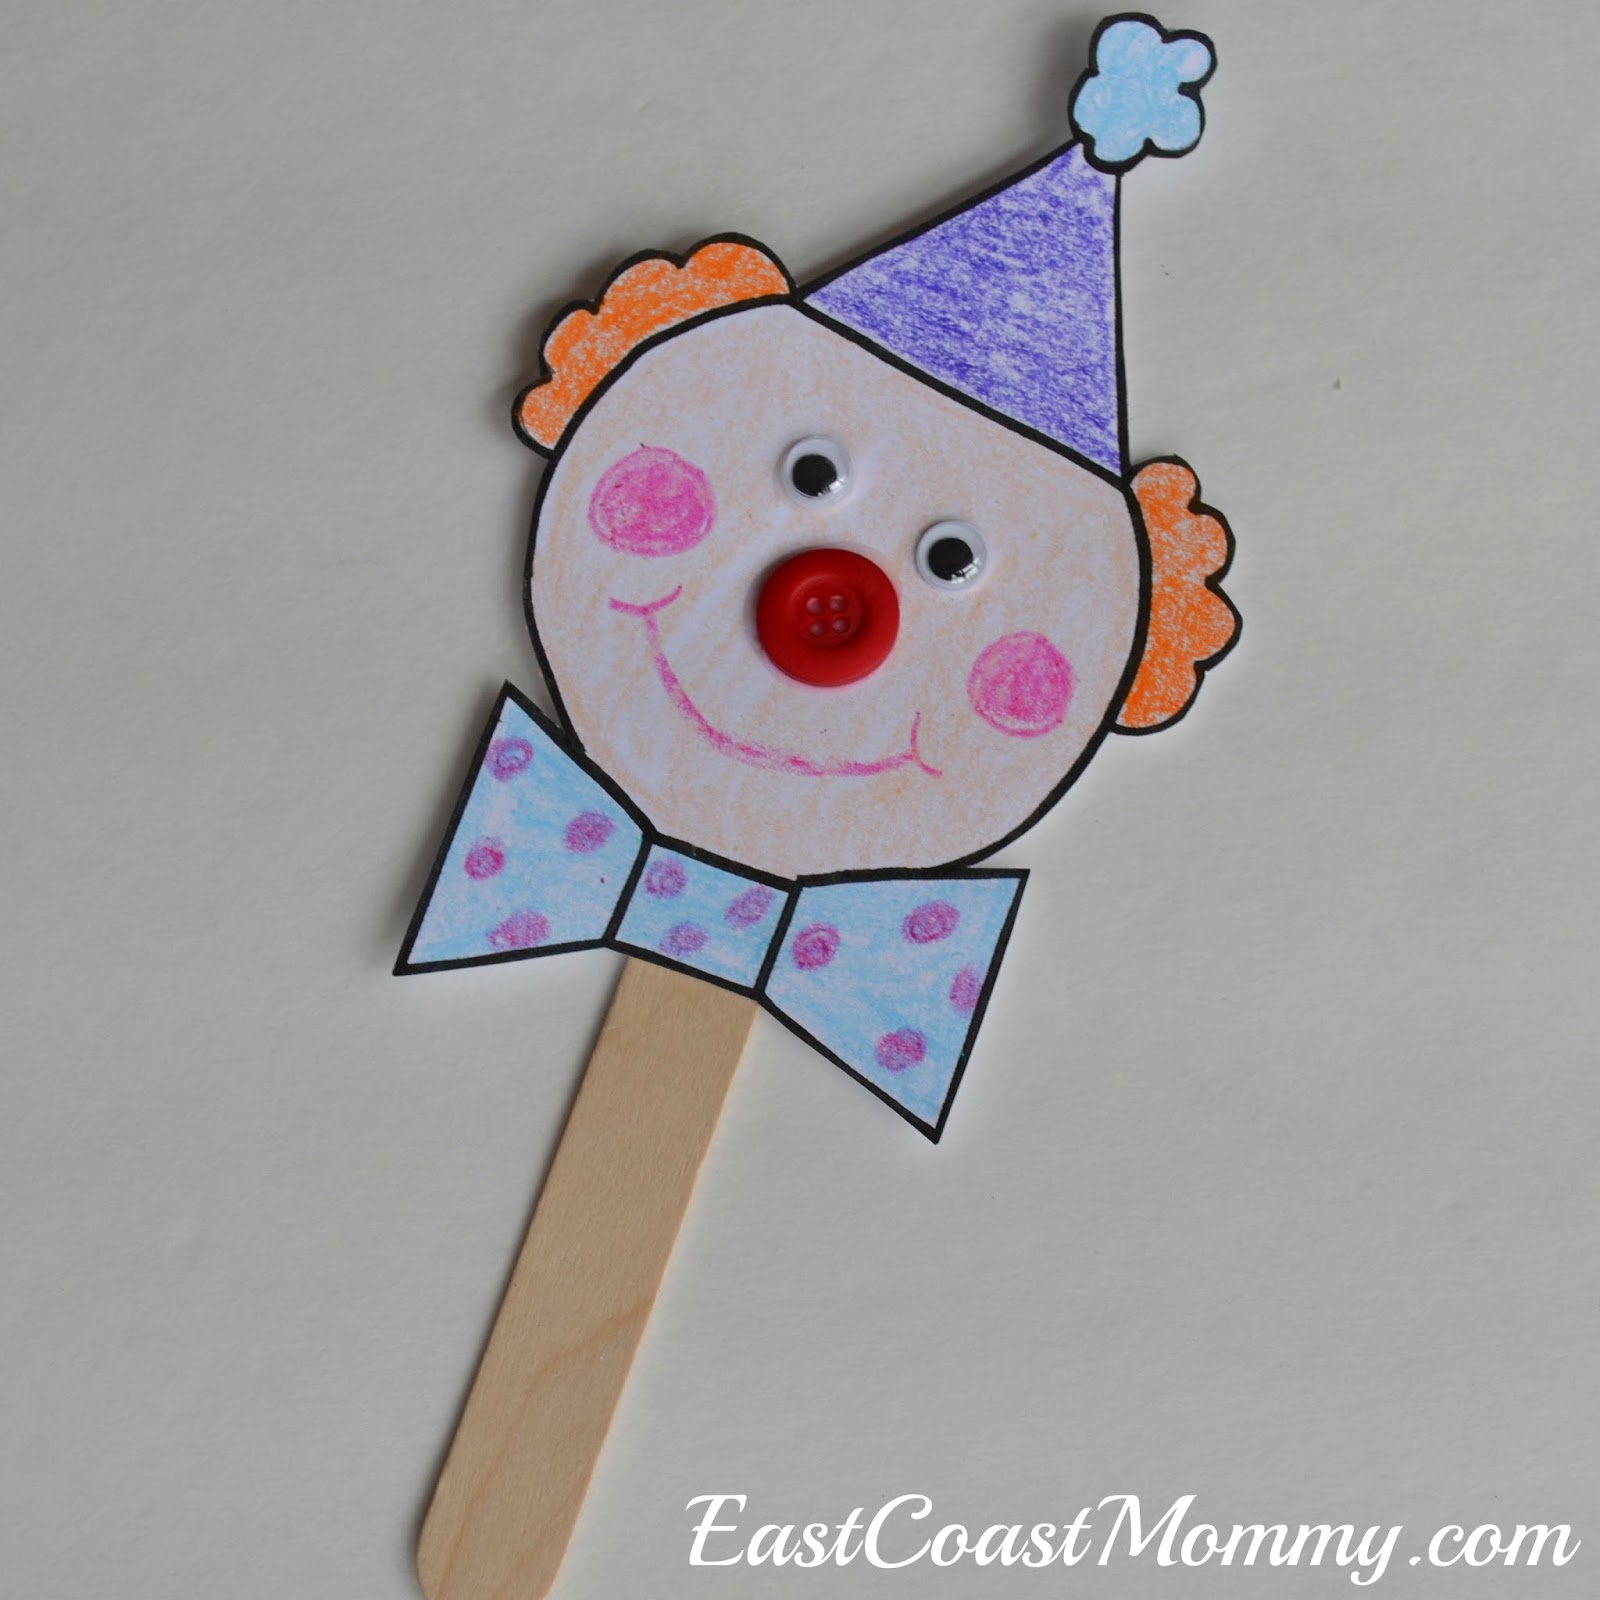 east coast mommy circus crafts with free printable templates